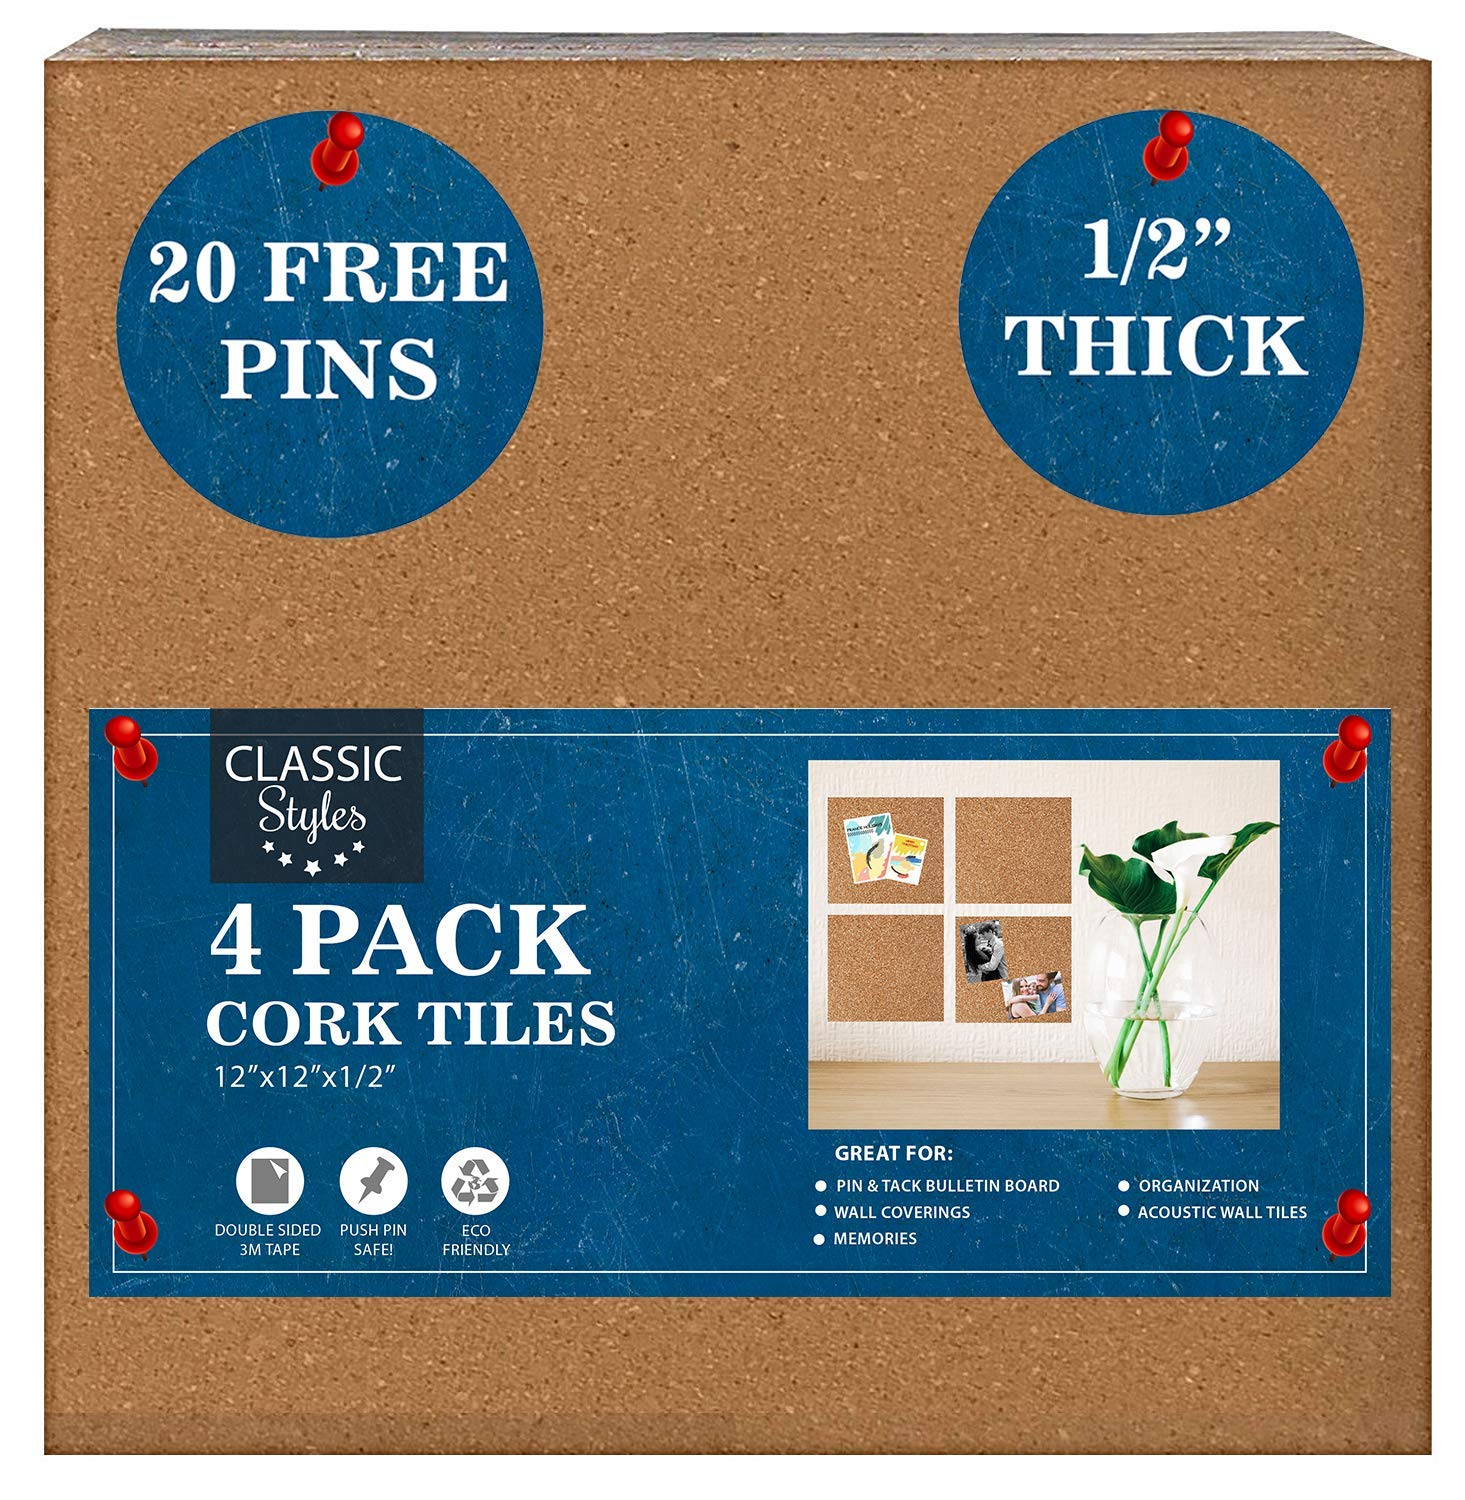 Bulletin Cork Board Tiles – Pin Board – 1/2 inch Thick with 3M Super Strong Self Adhesive – 4X12'x12' Cork Squares for Wall – Create Photo, Memory, Schedule, Goal Pin Board – Create a Wall Backsplash